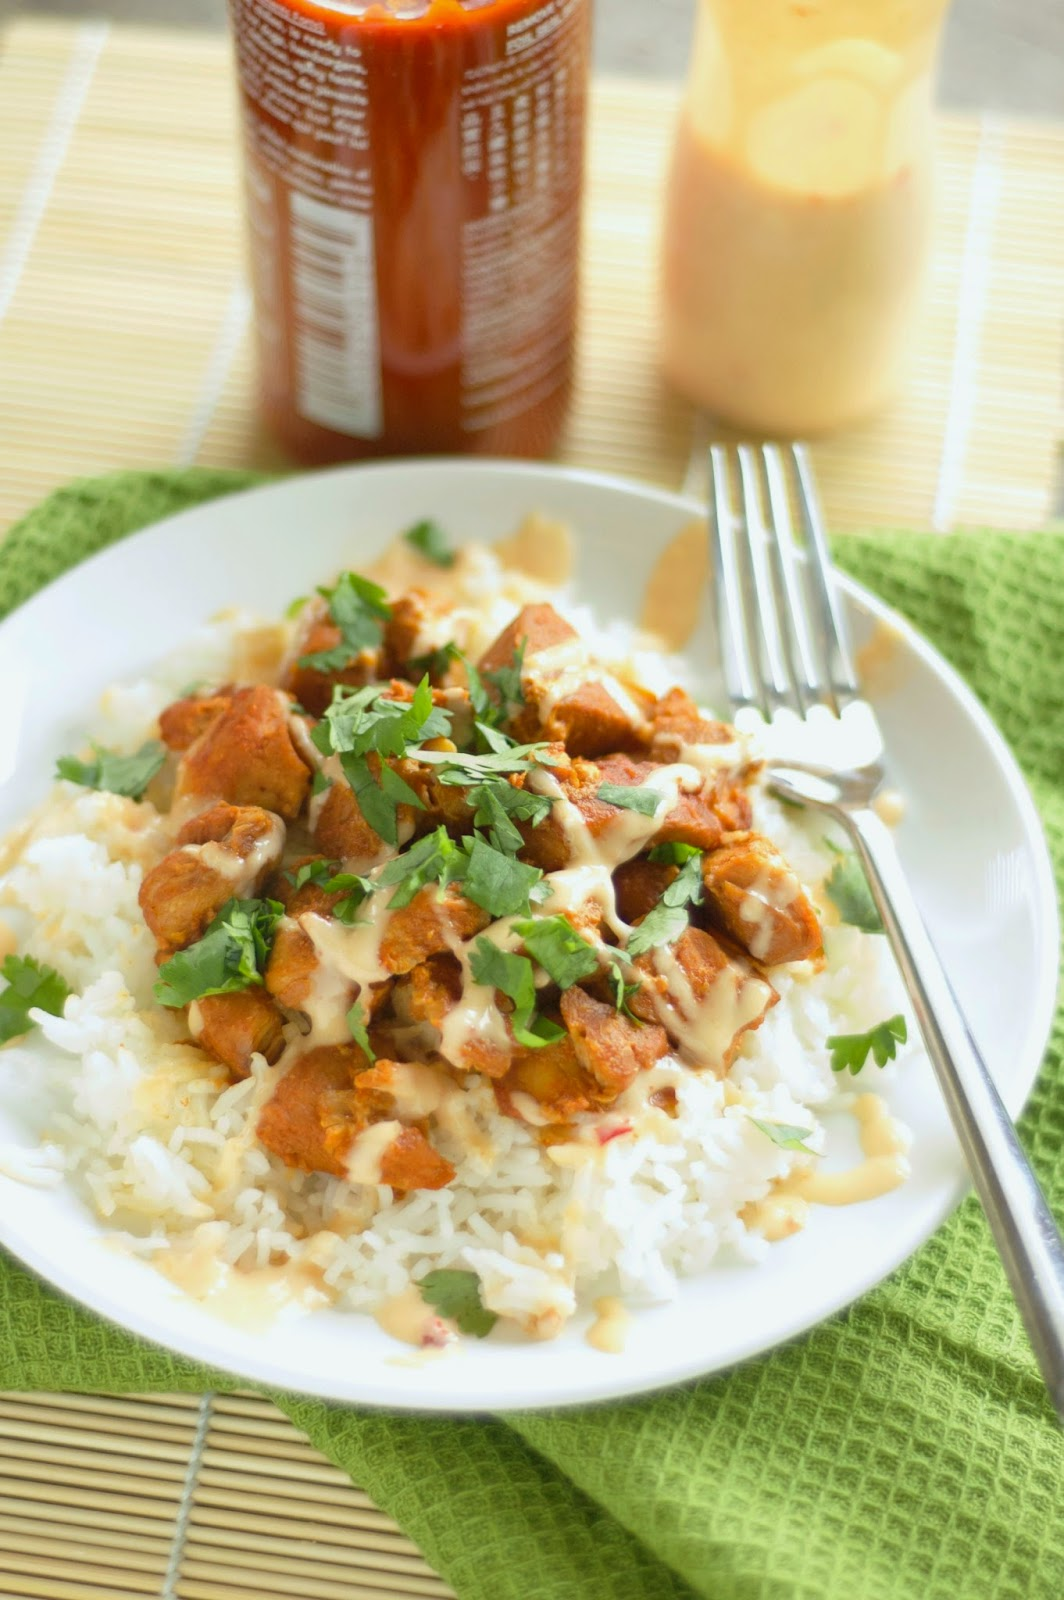 CrockPot Honey Sriracha Chicken from Slow Cooker Gourmet found on SlowCookerFromScratch.com